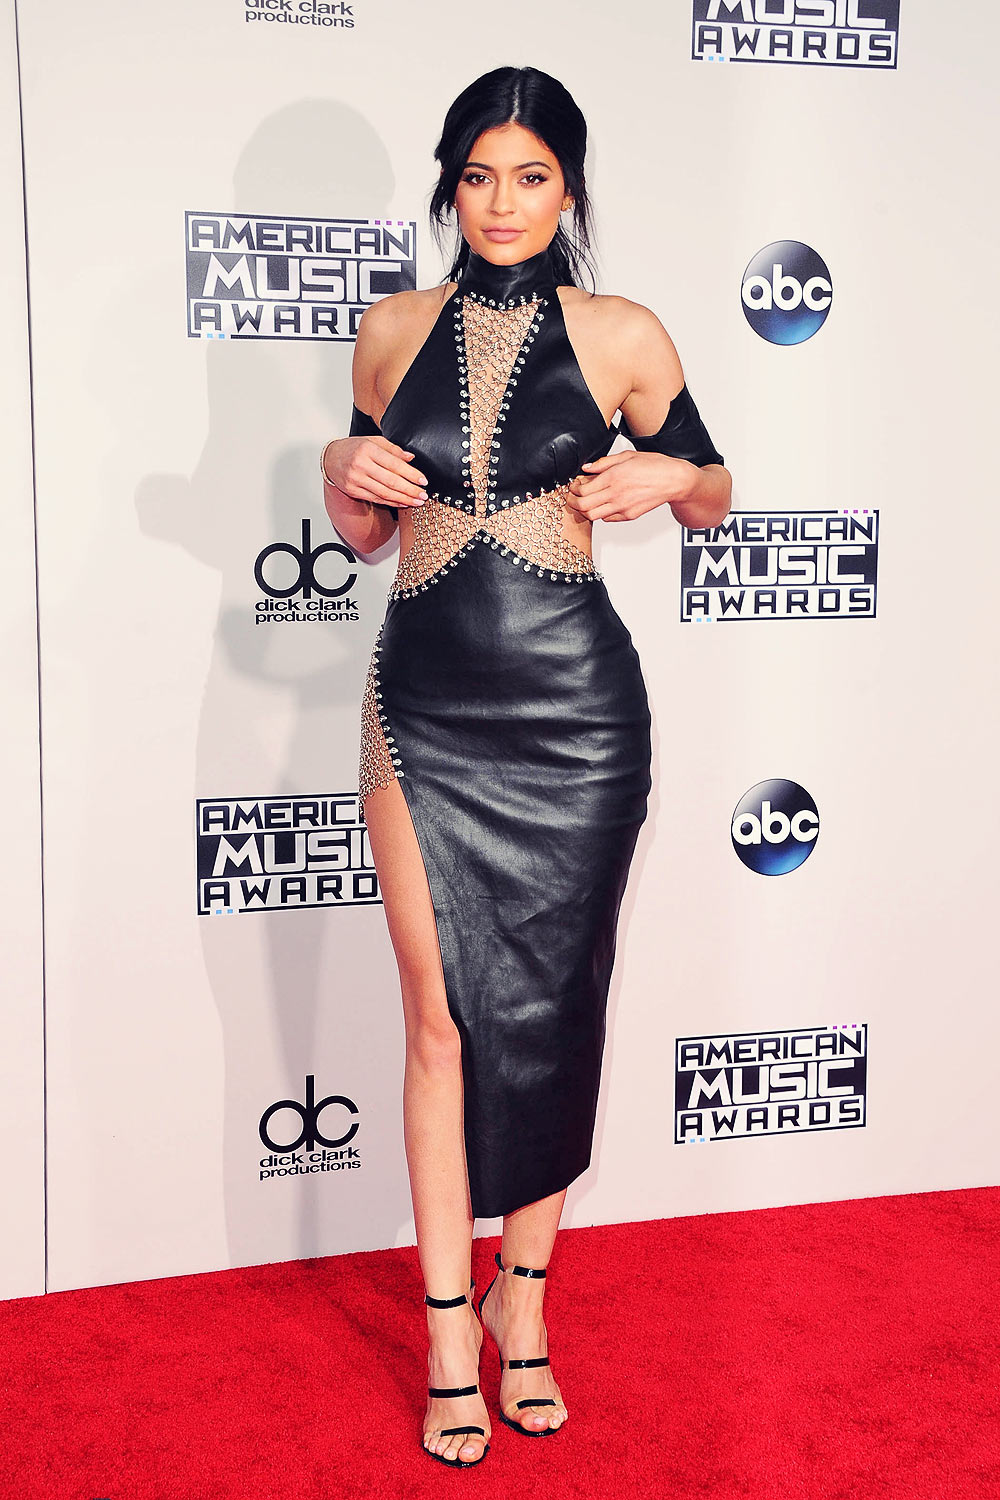 Kylie Jenner attends 43rd American Music Awards